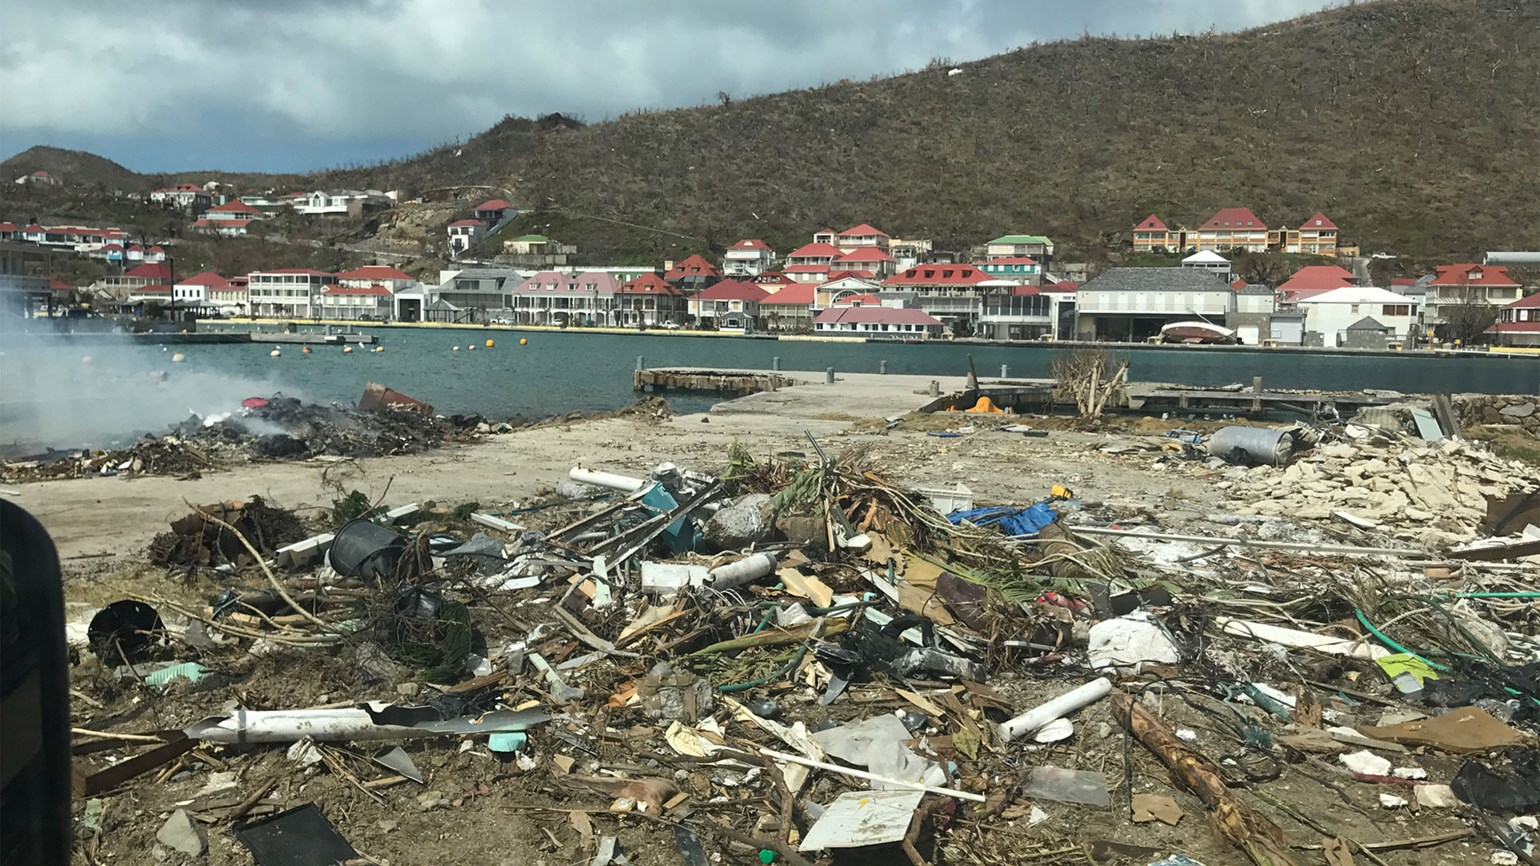 Focus St Forum >> Tradewind Aviation contributes to Irma relief in St. Barts: Travel Weekly